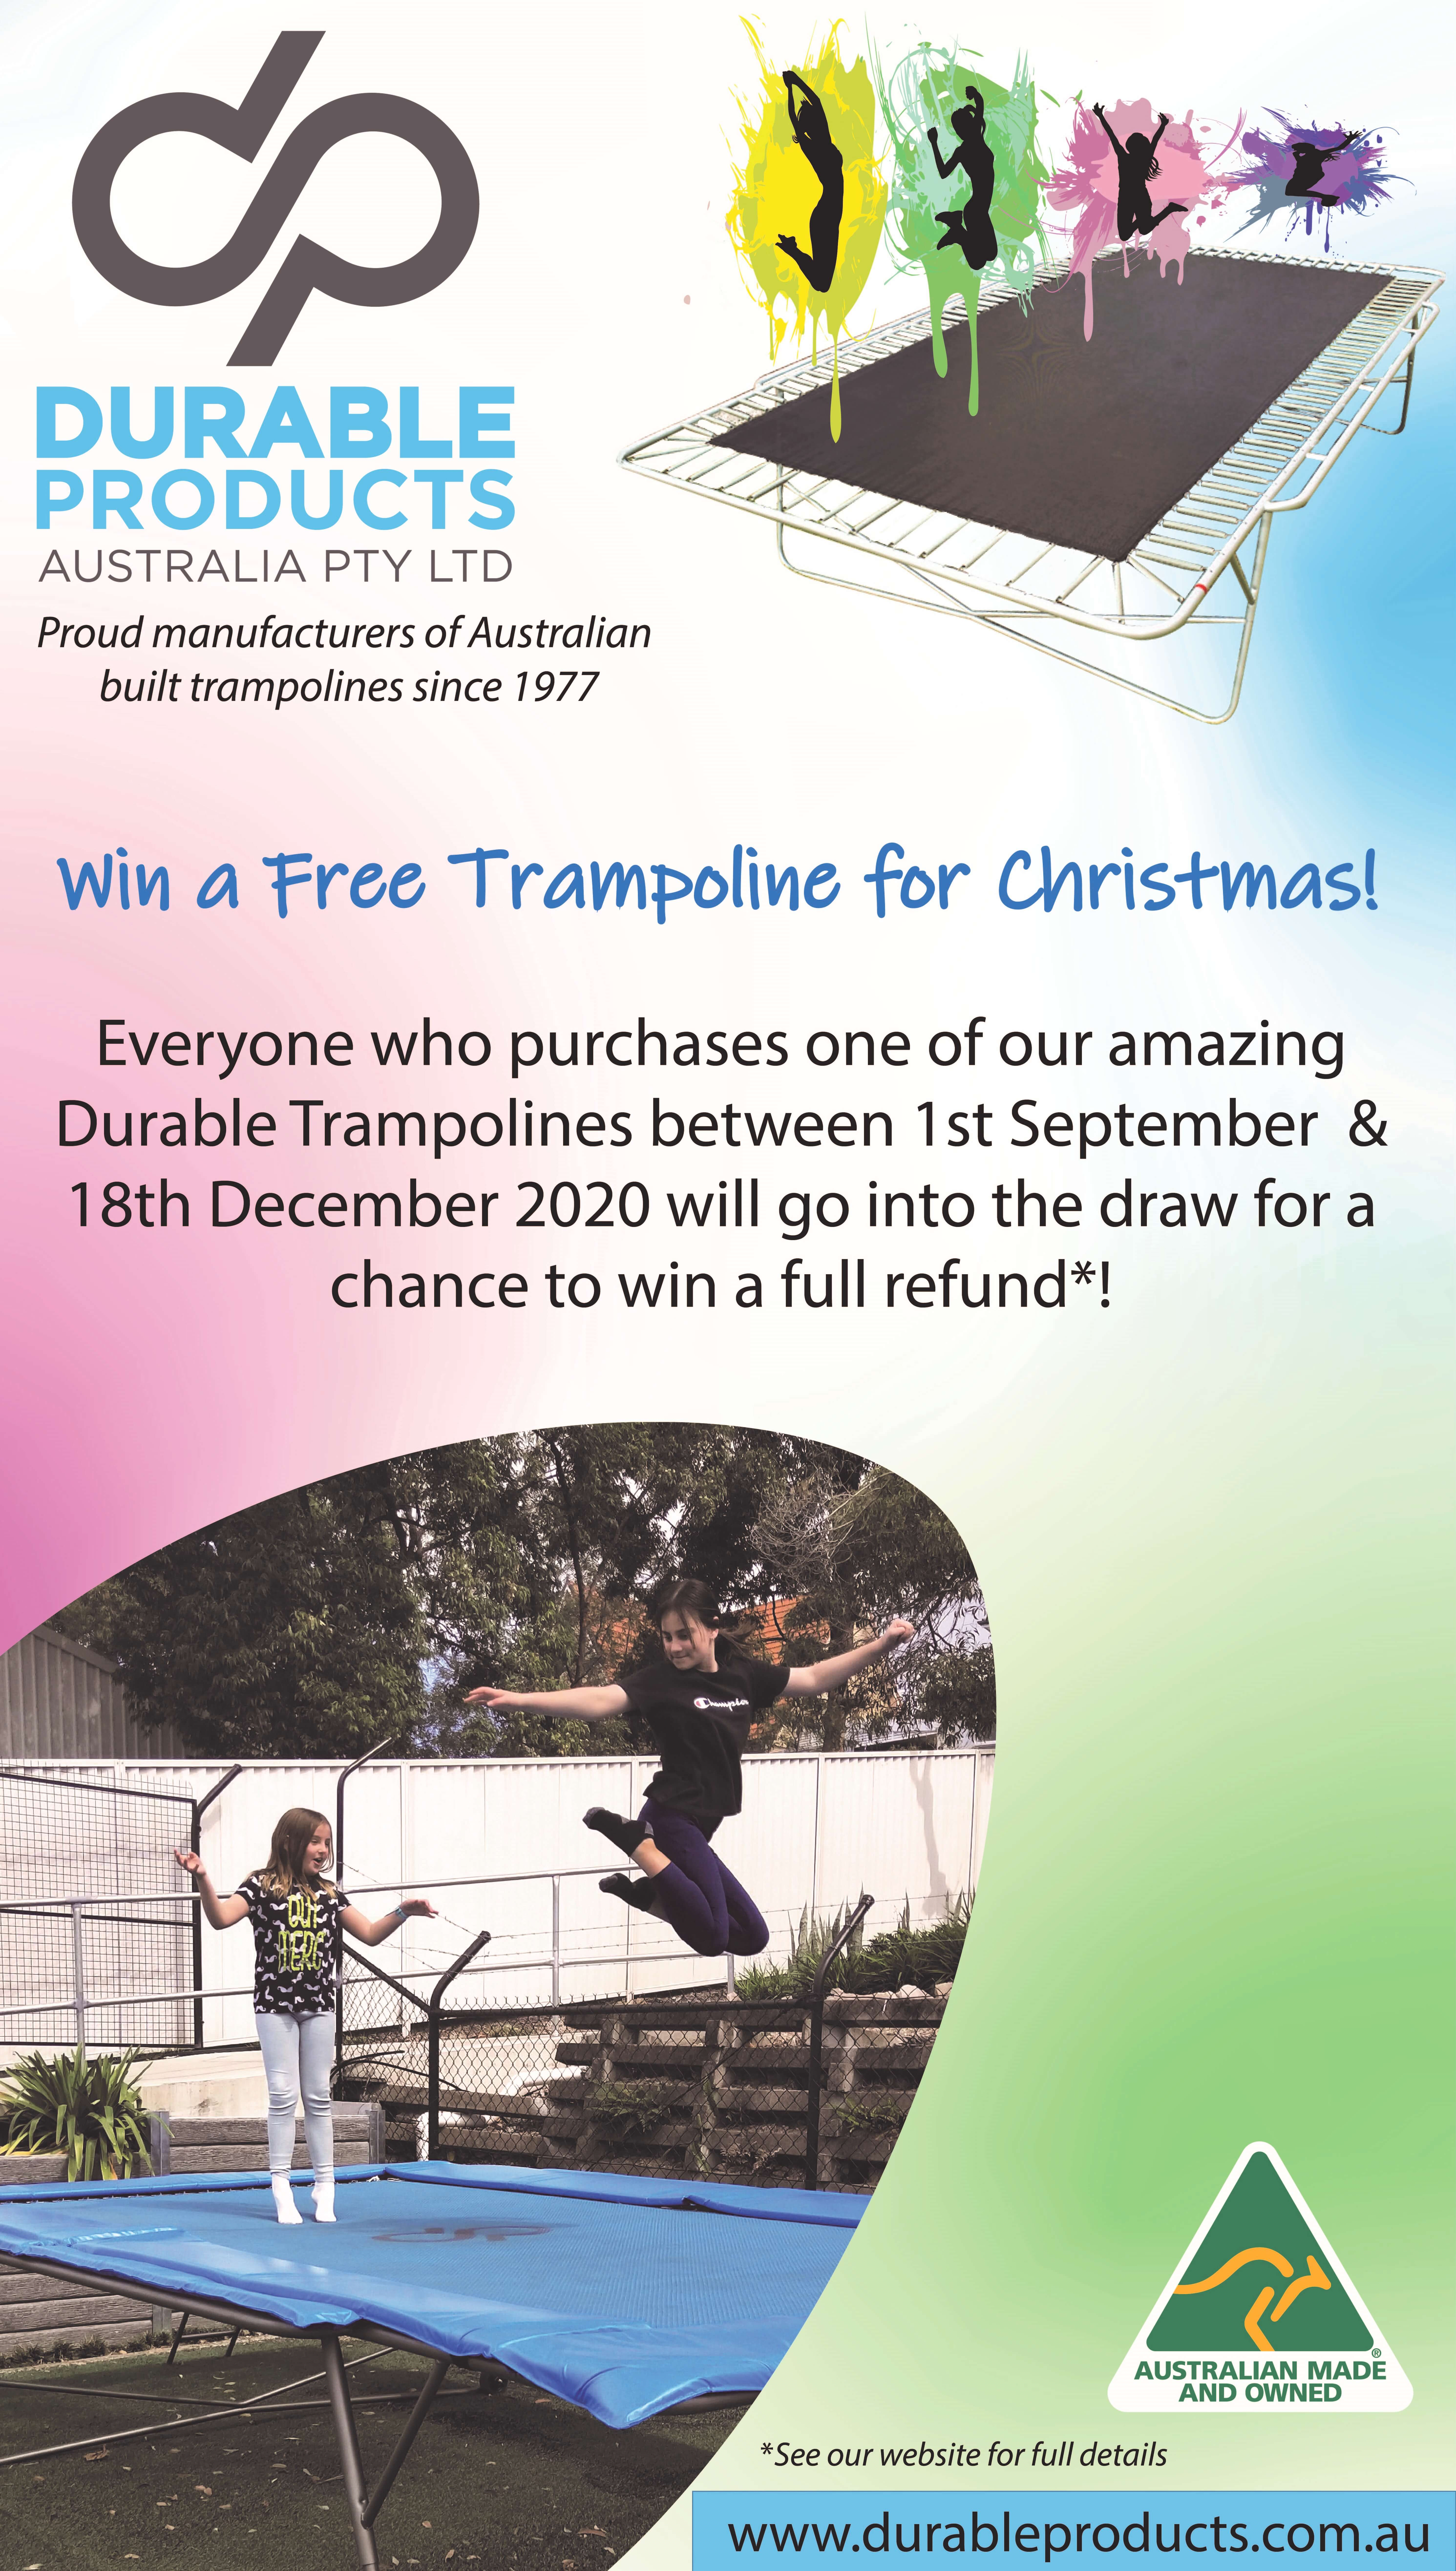 2020 Christmas Trampoline Durable Products   Christmas Promotion 2020